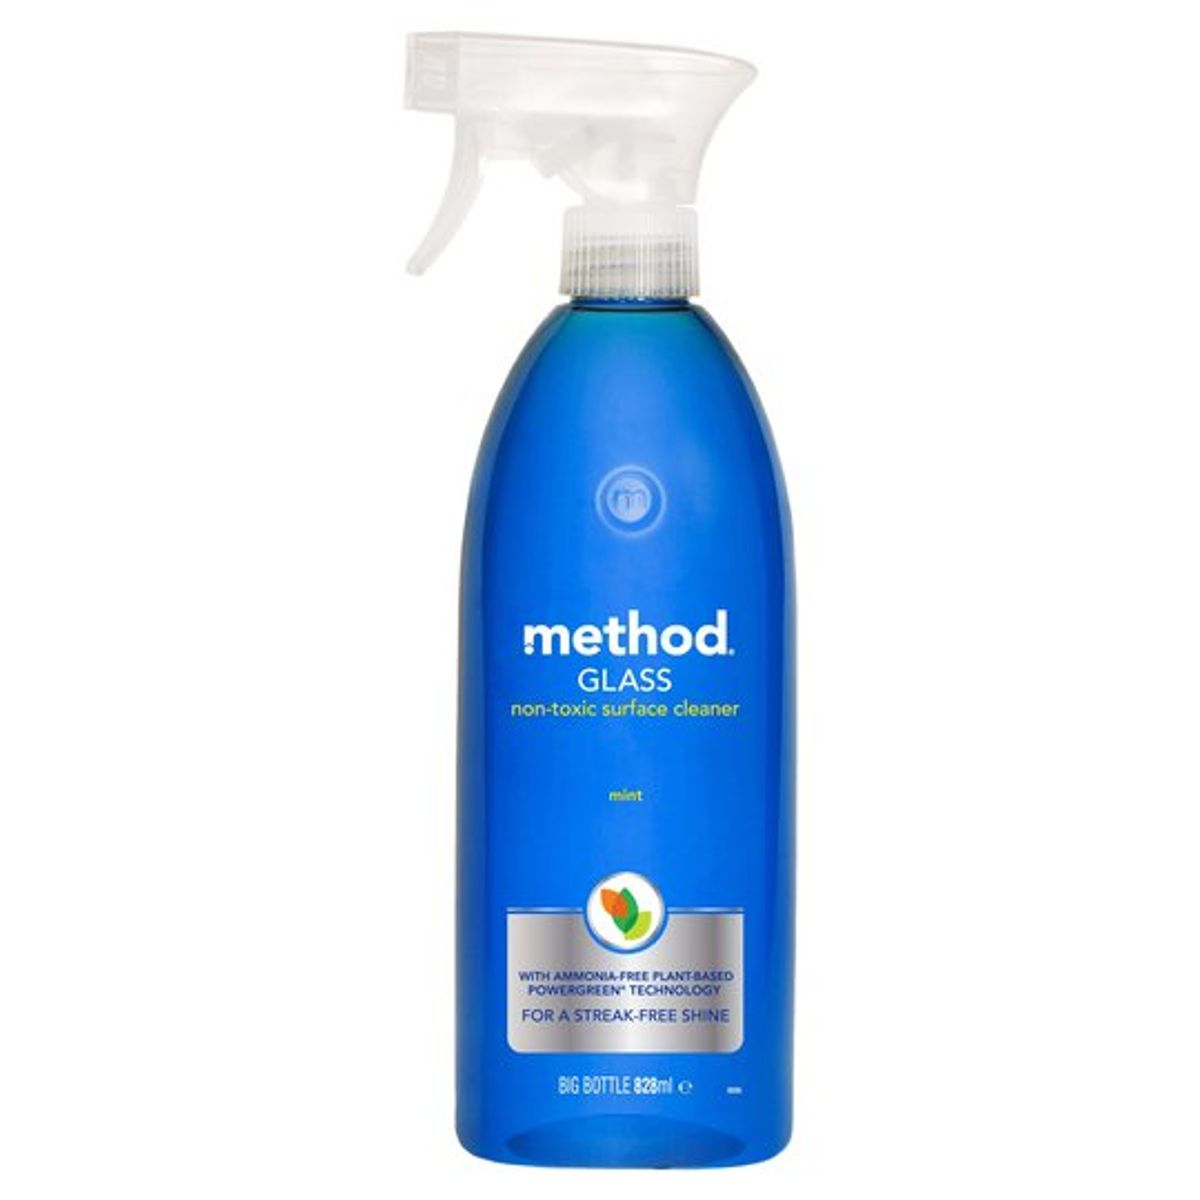 Method Glass Spray - Mint - 828ml